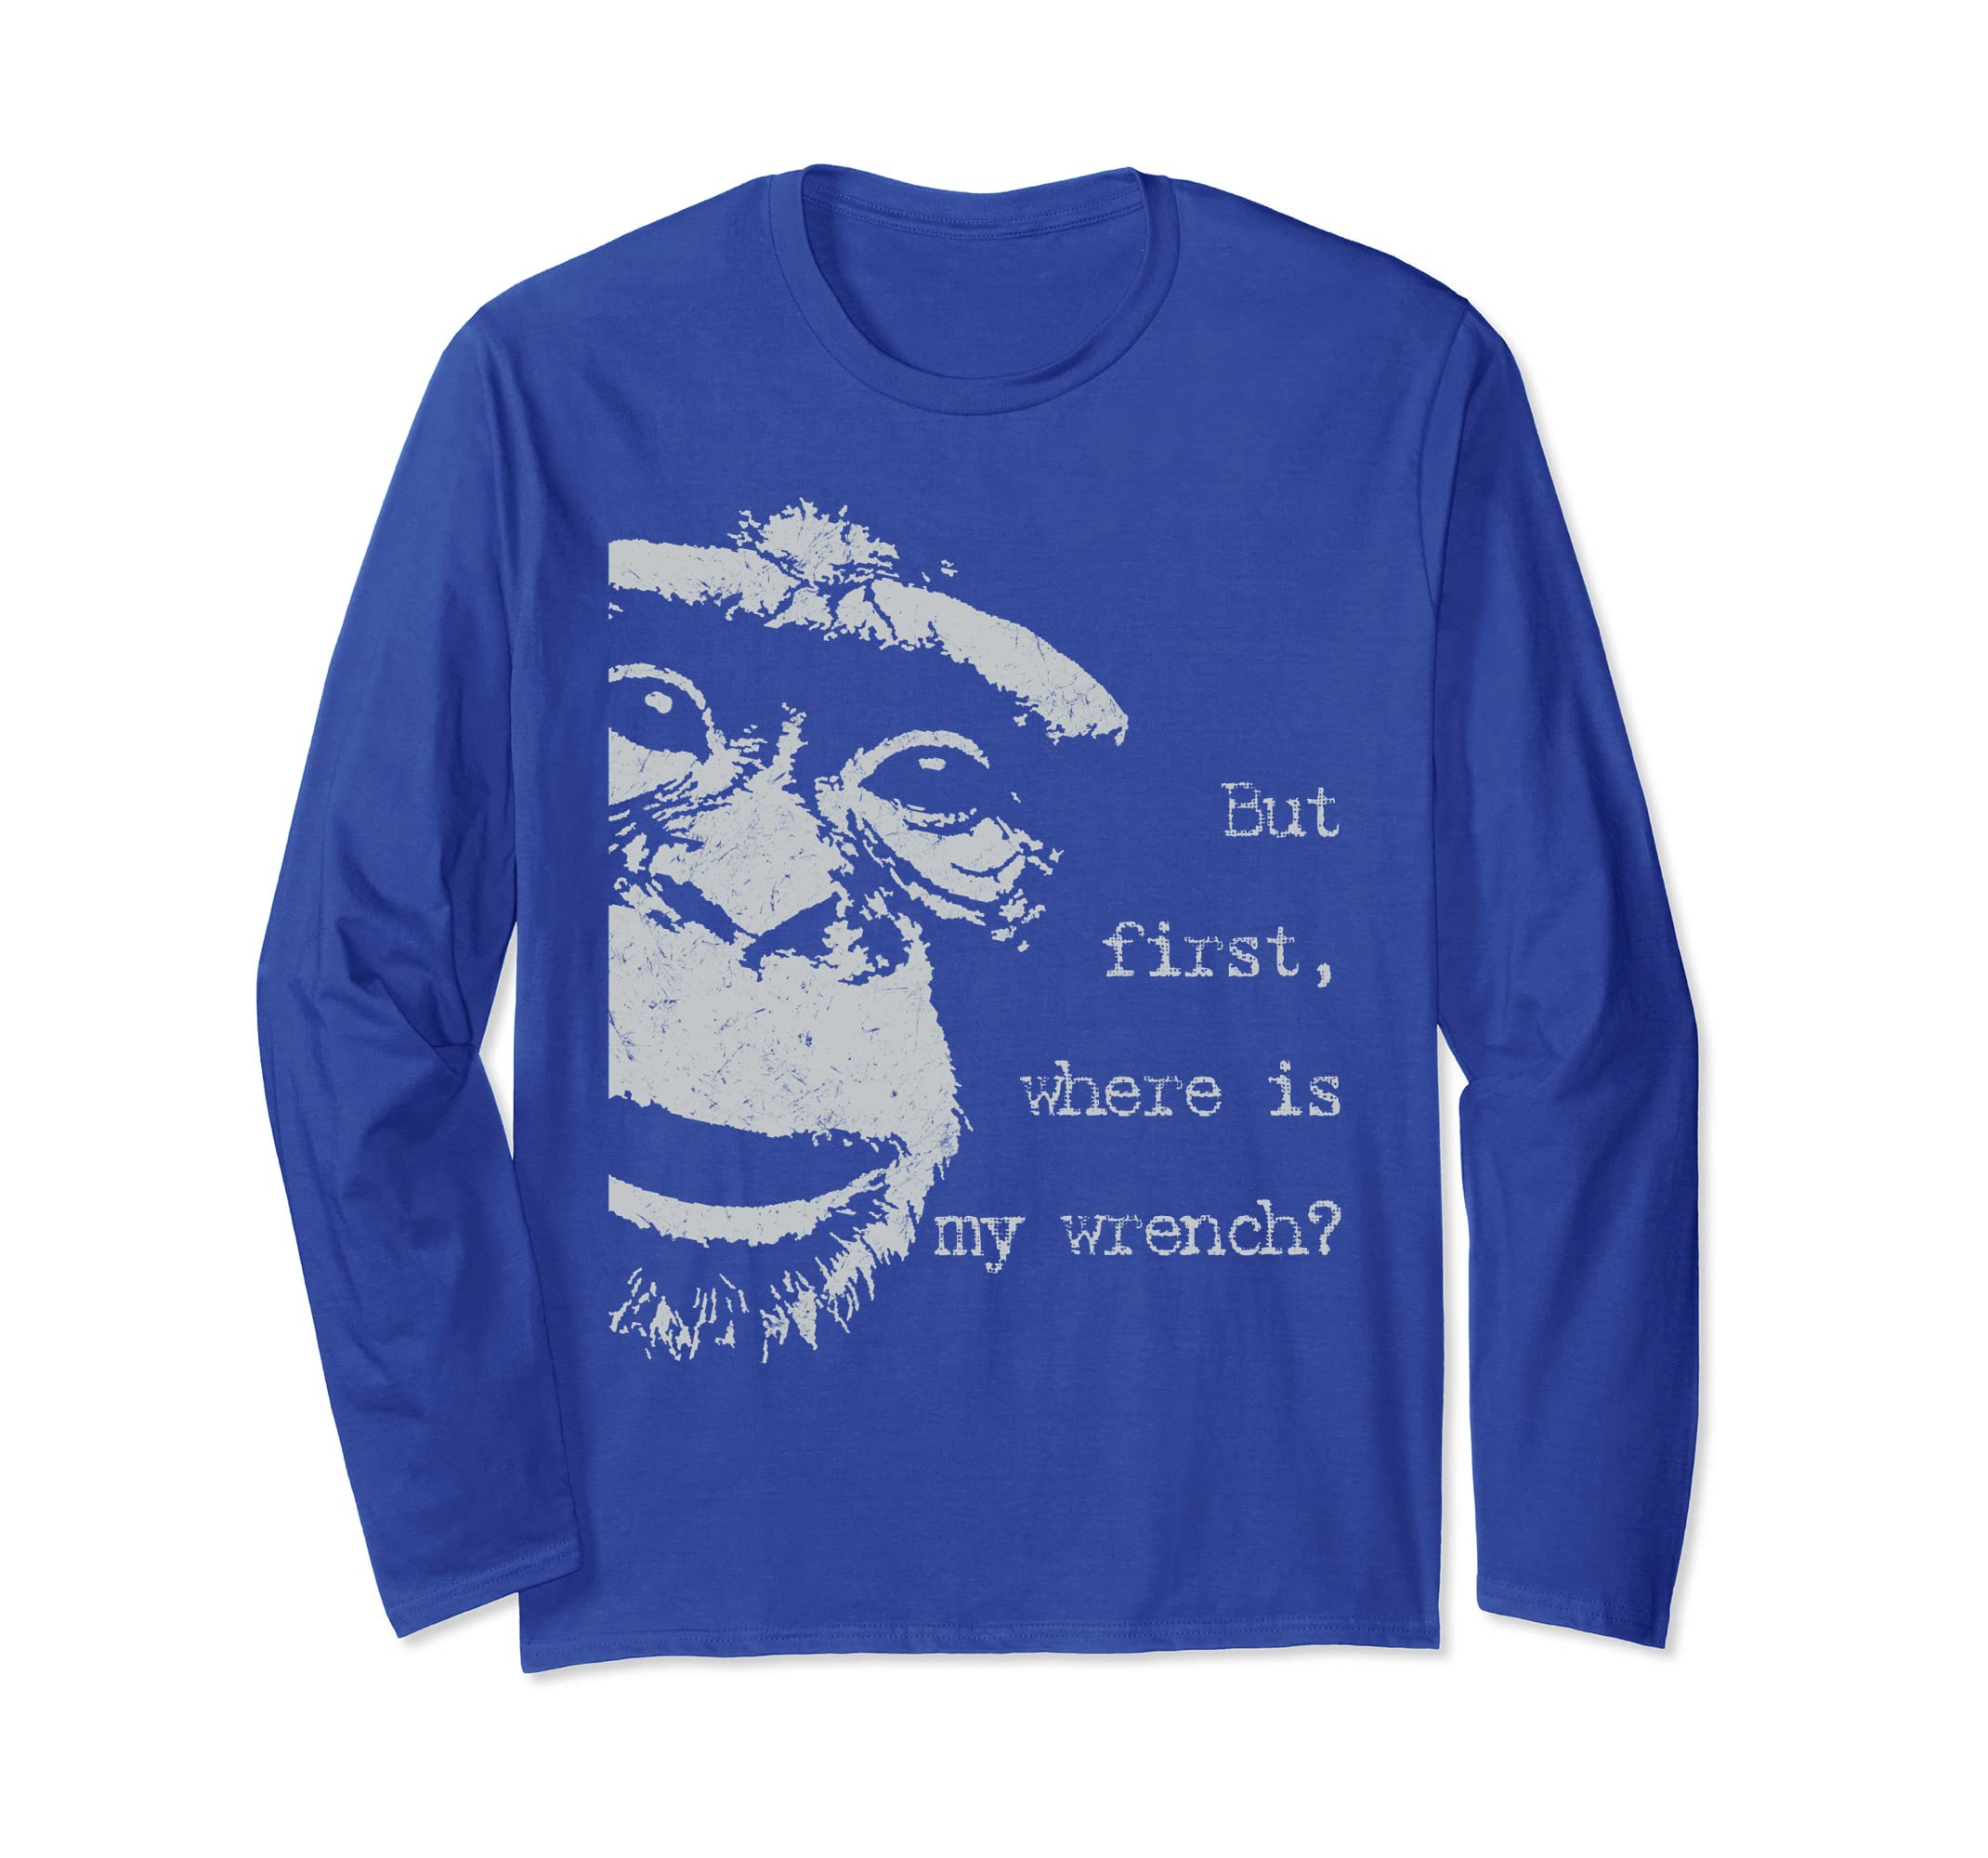 But first, where is my wrench? funny long sleeve t shirt-ln